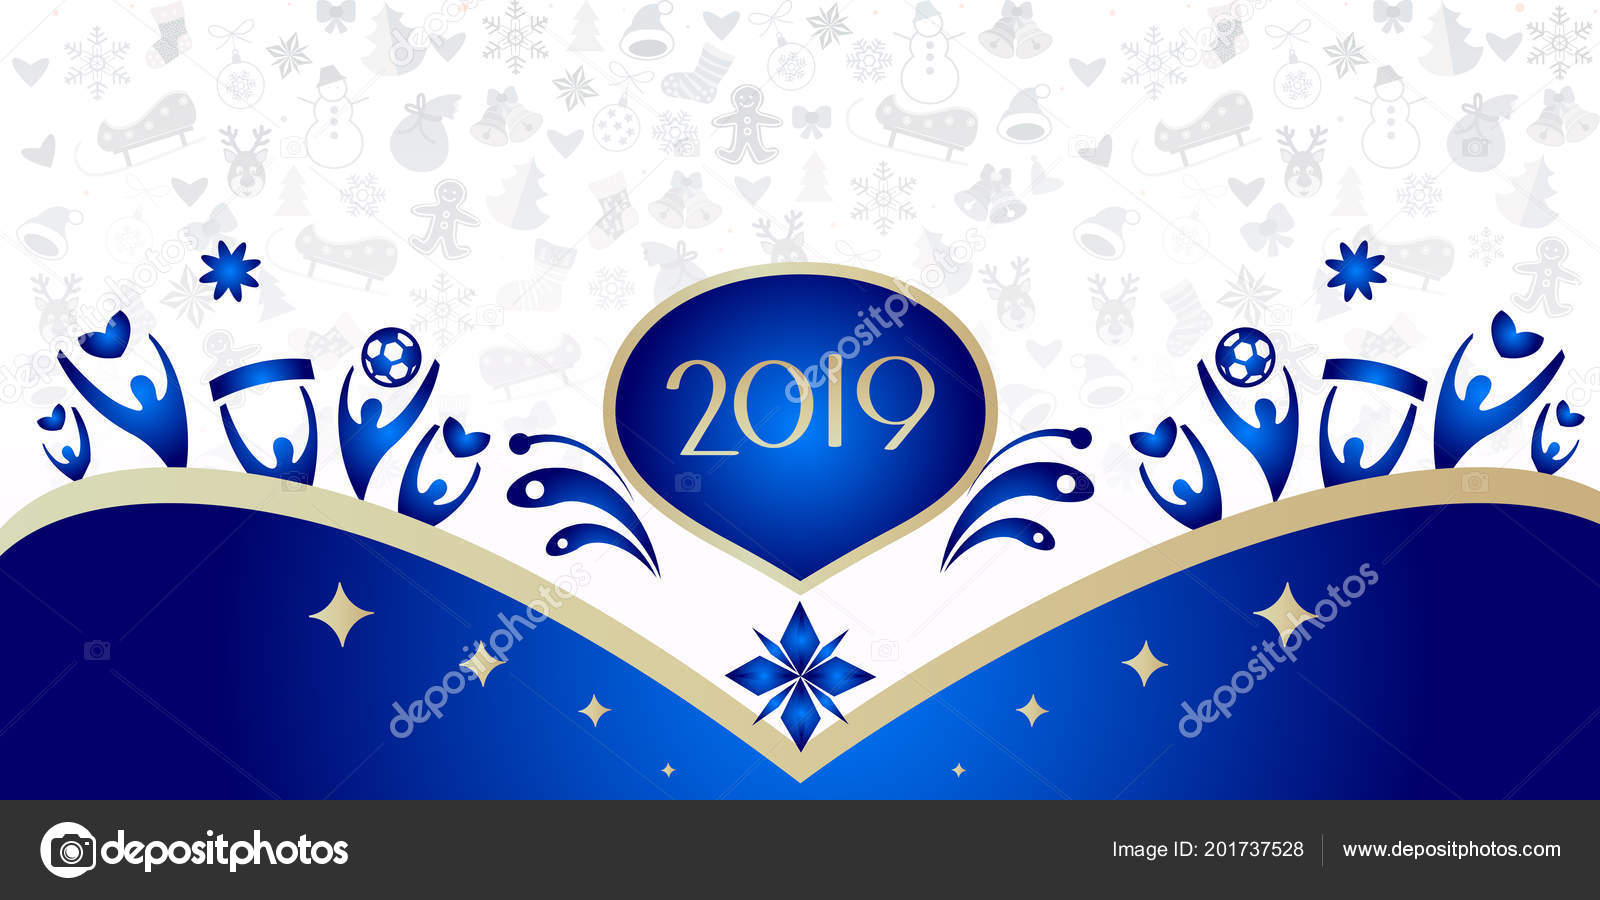 2019 happy new year event invitation fireworks festival pattern with decorative elements stars ball abstract holiday shine starburst background